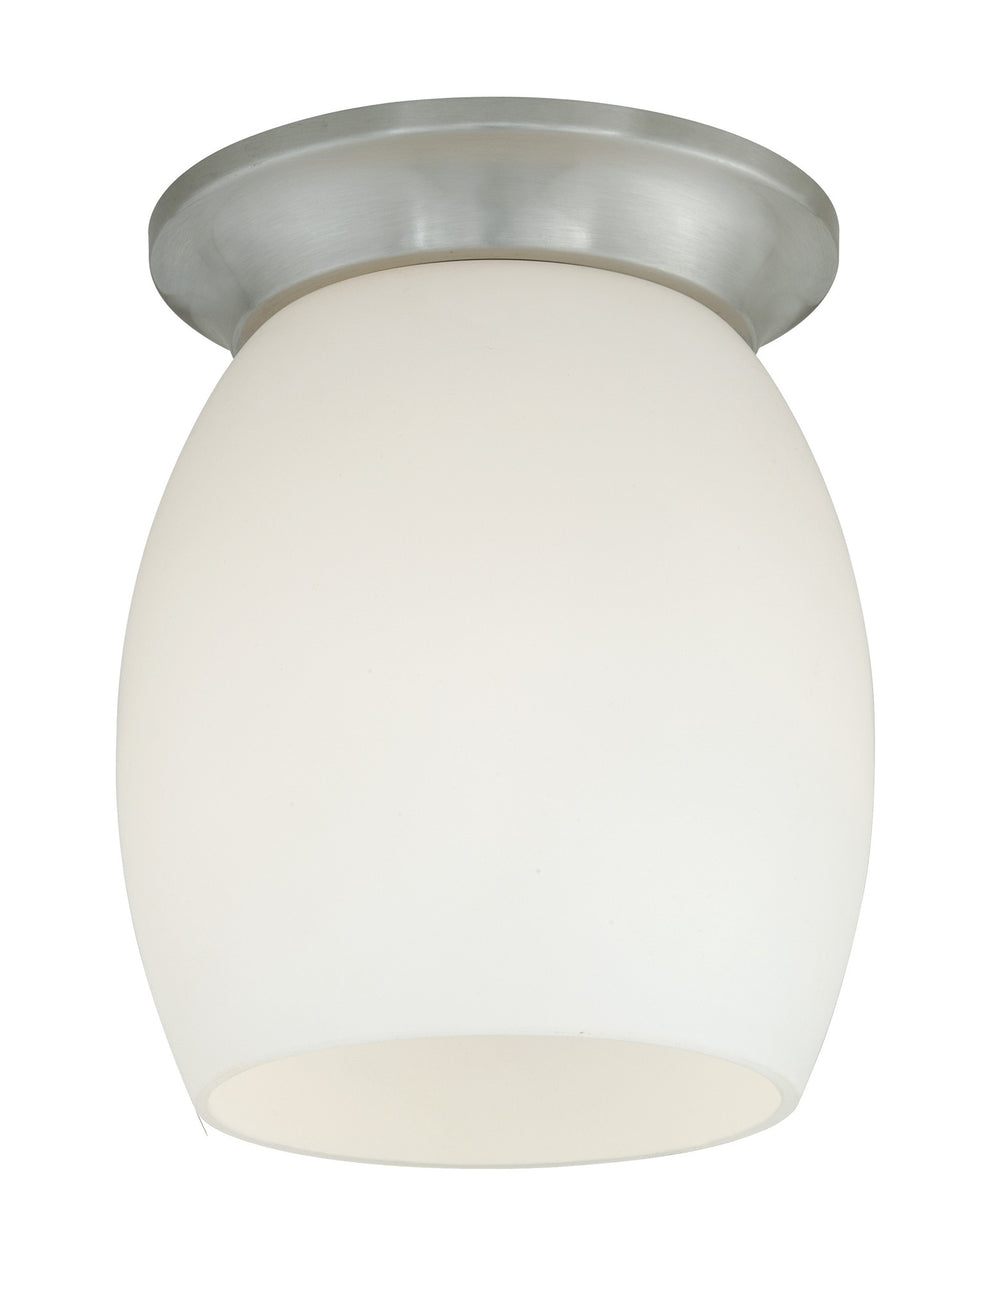 Buy C0027 Vaxcel Ceiling Light 5